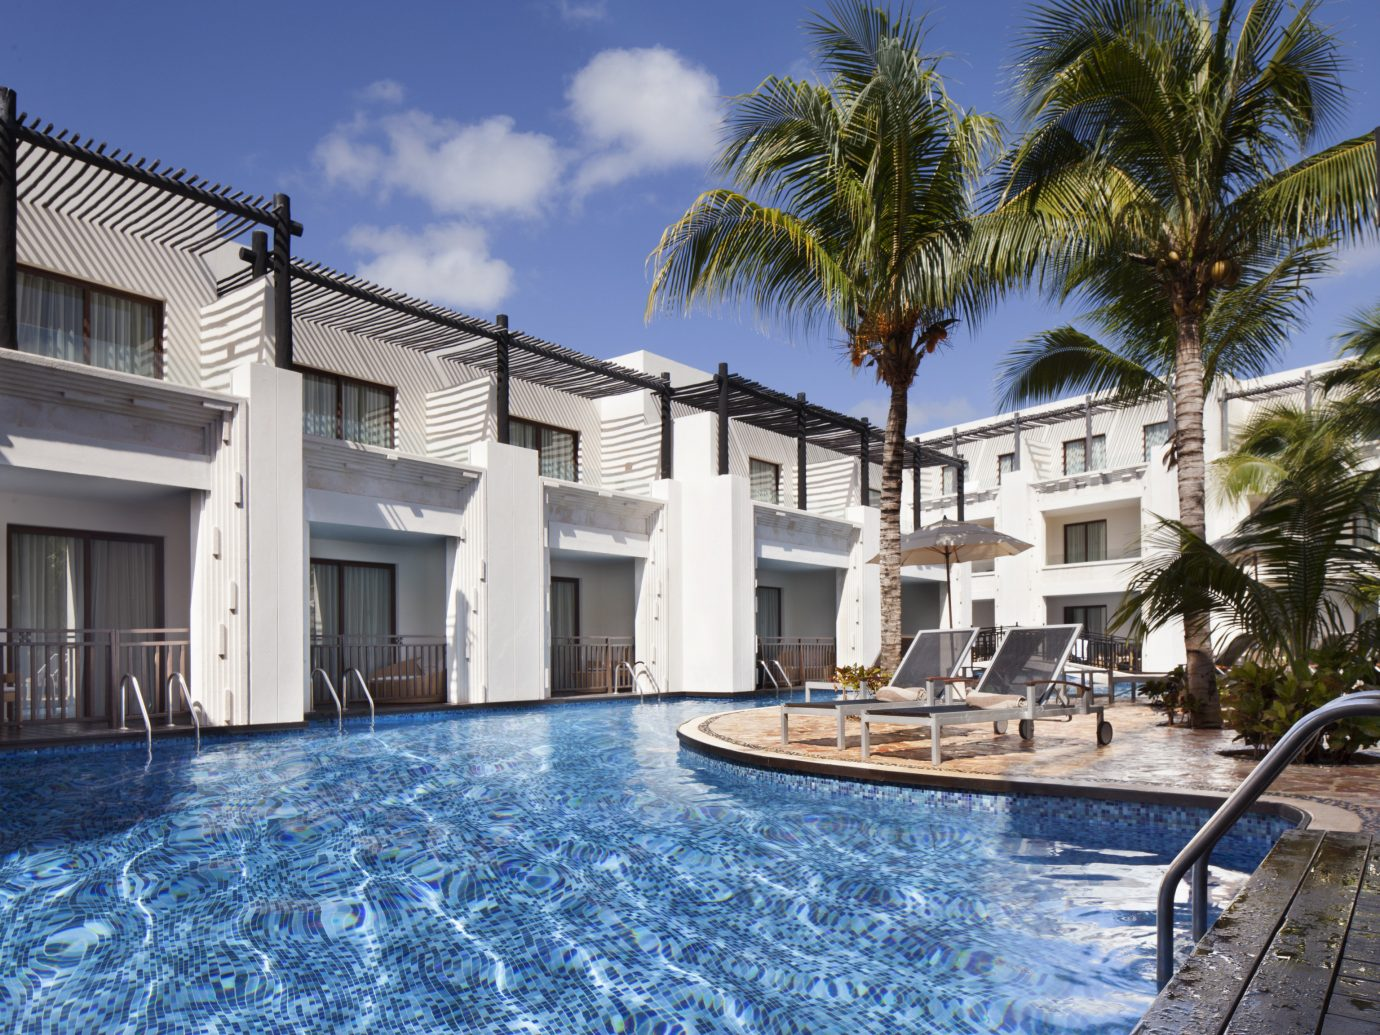 Hotels outdoor sky water property swimming pool Resort Pool real estate home Villa estate apartment condominium hotel house mansion building palm tree arecales leisure facade window hacienda vacation swimming